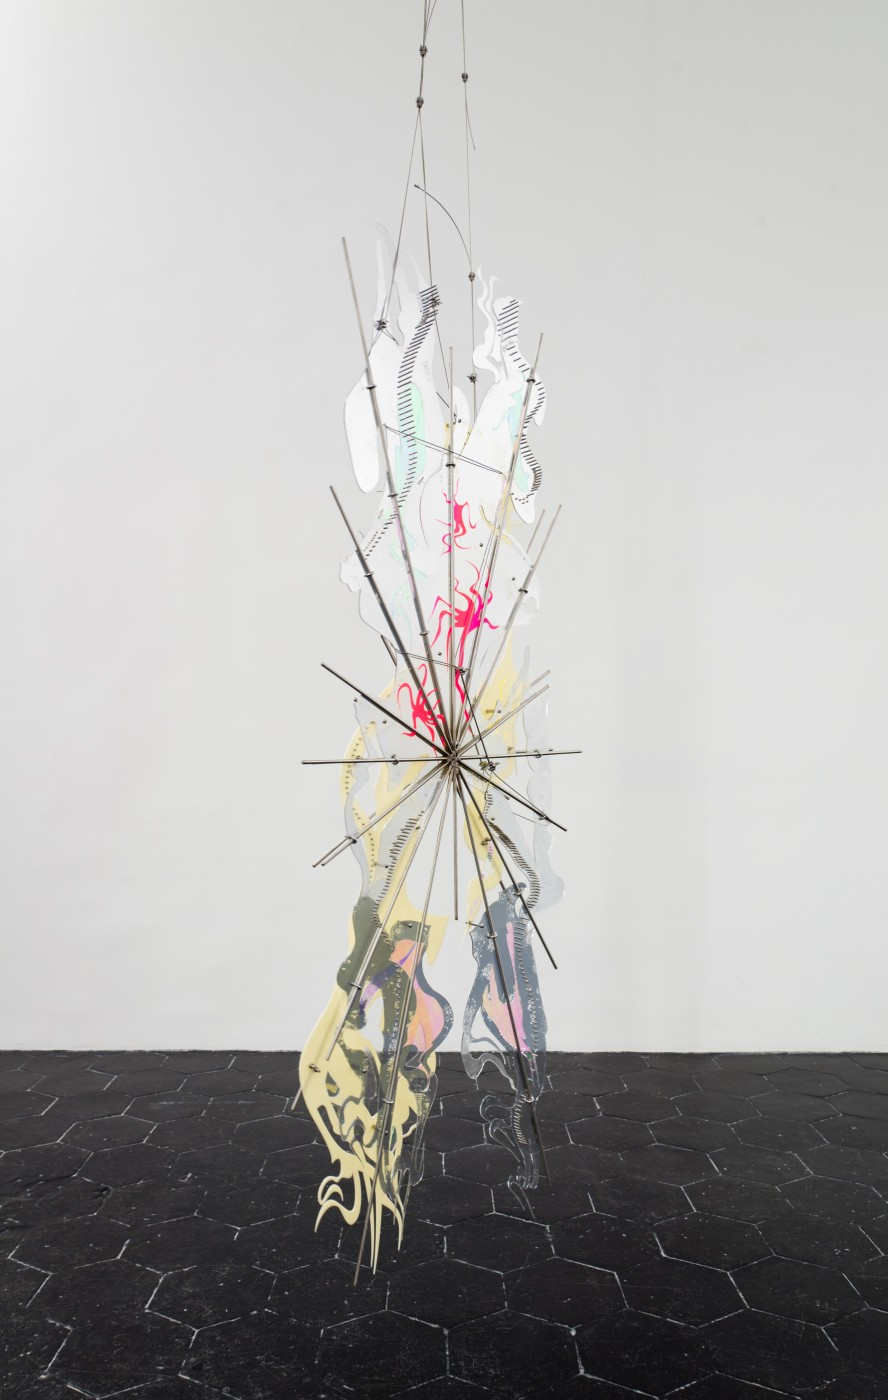 AFTERBURNER, THE ENEMY (LONG ARMED SUN) AND SKINSUIT AT THE CASTLE  Skinsuit at the Castle</I>, 2016 